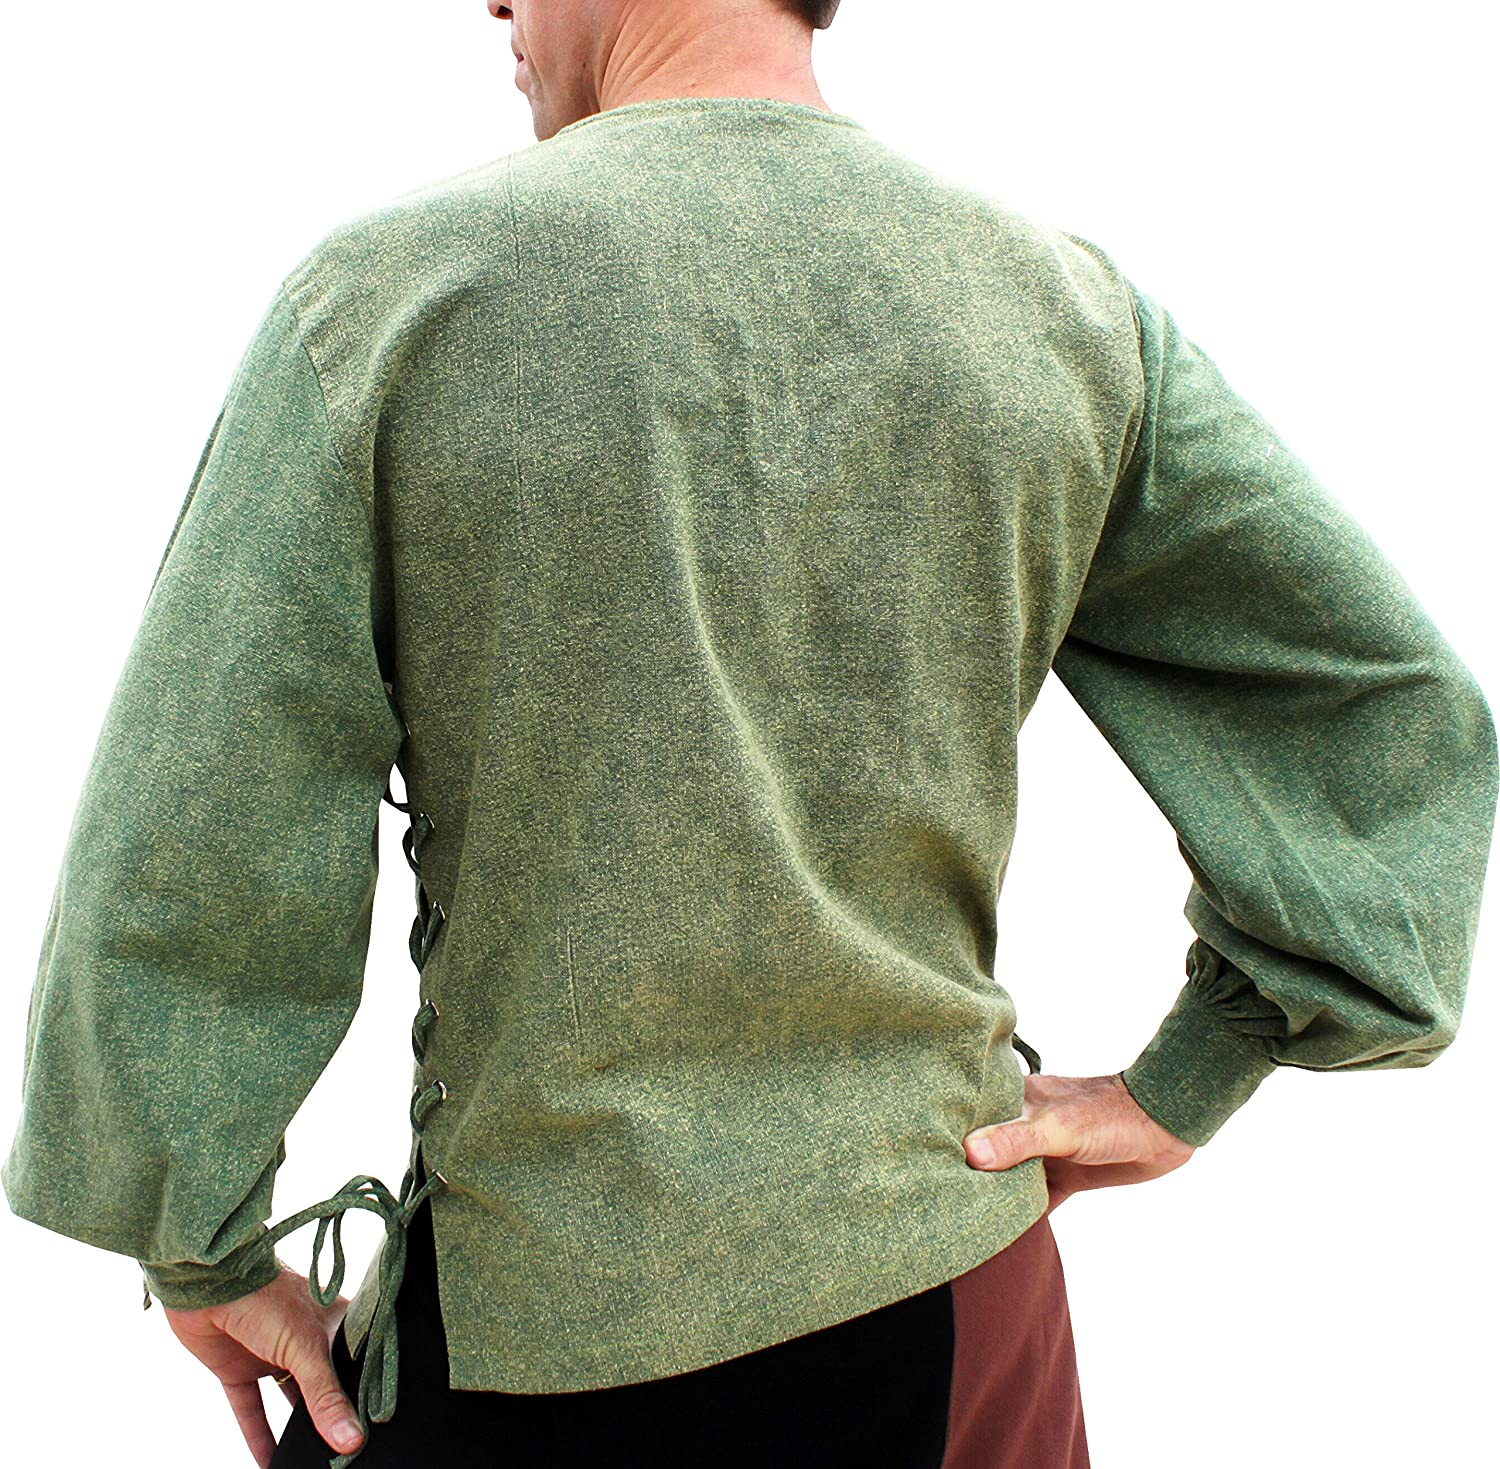 Quality Cotton Button Sleeve Medieval Pirate Shirt Stonewash Teal Green